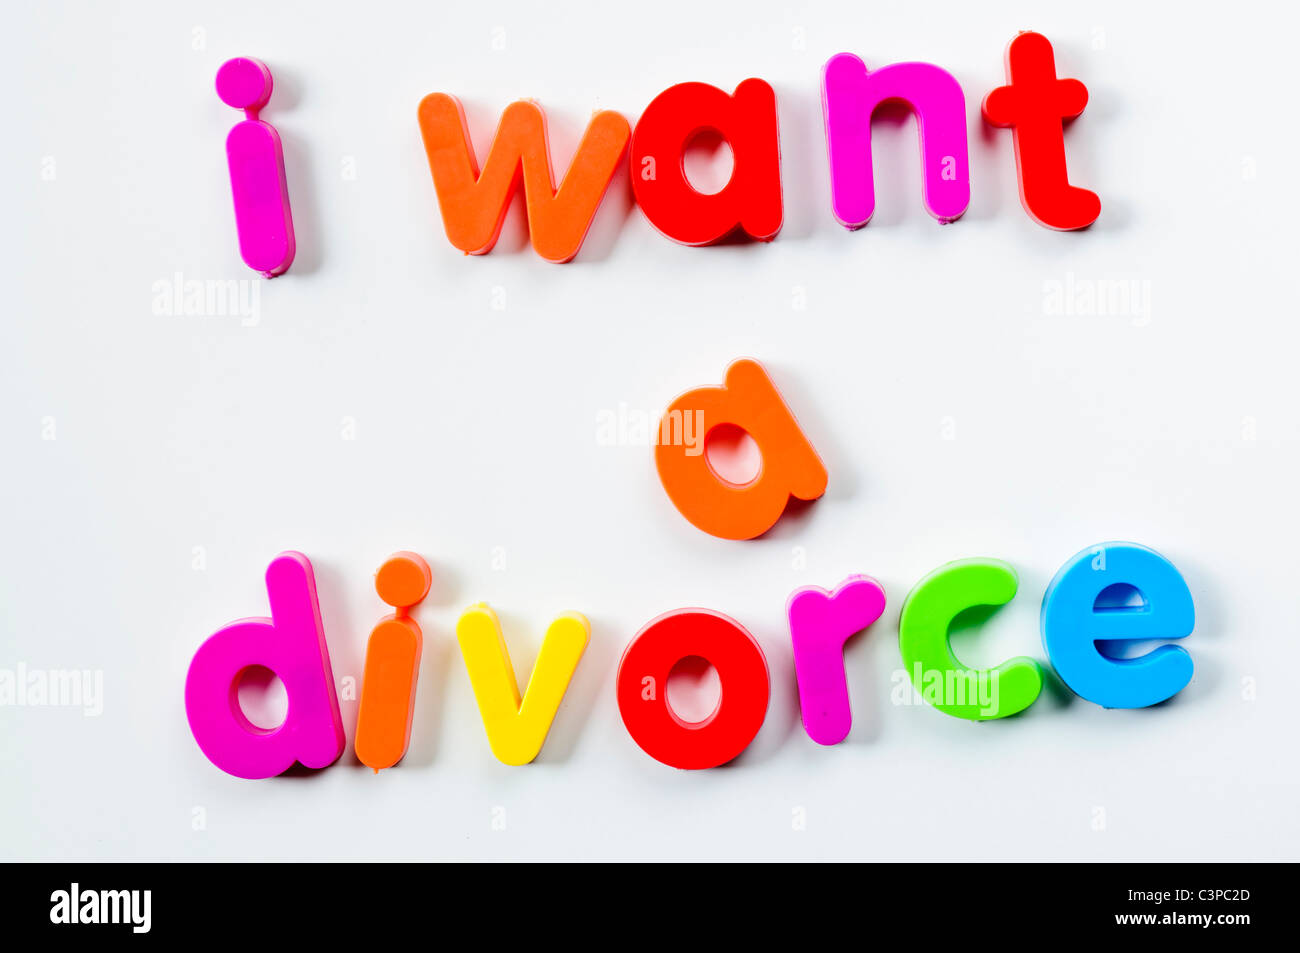 Fridge magnets magnetic letters spelling out 'I want a divorce' - Stock Image